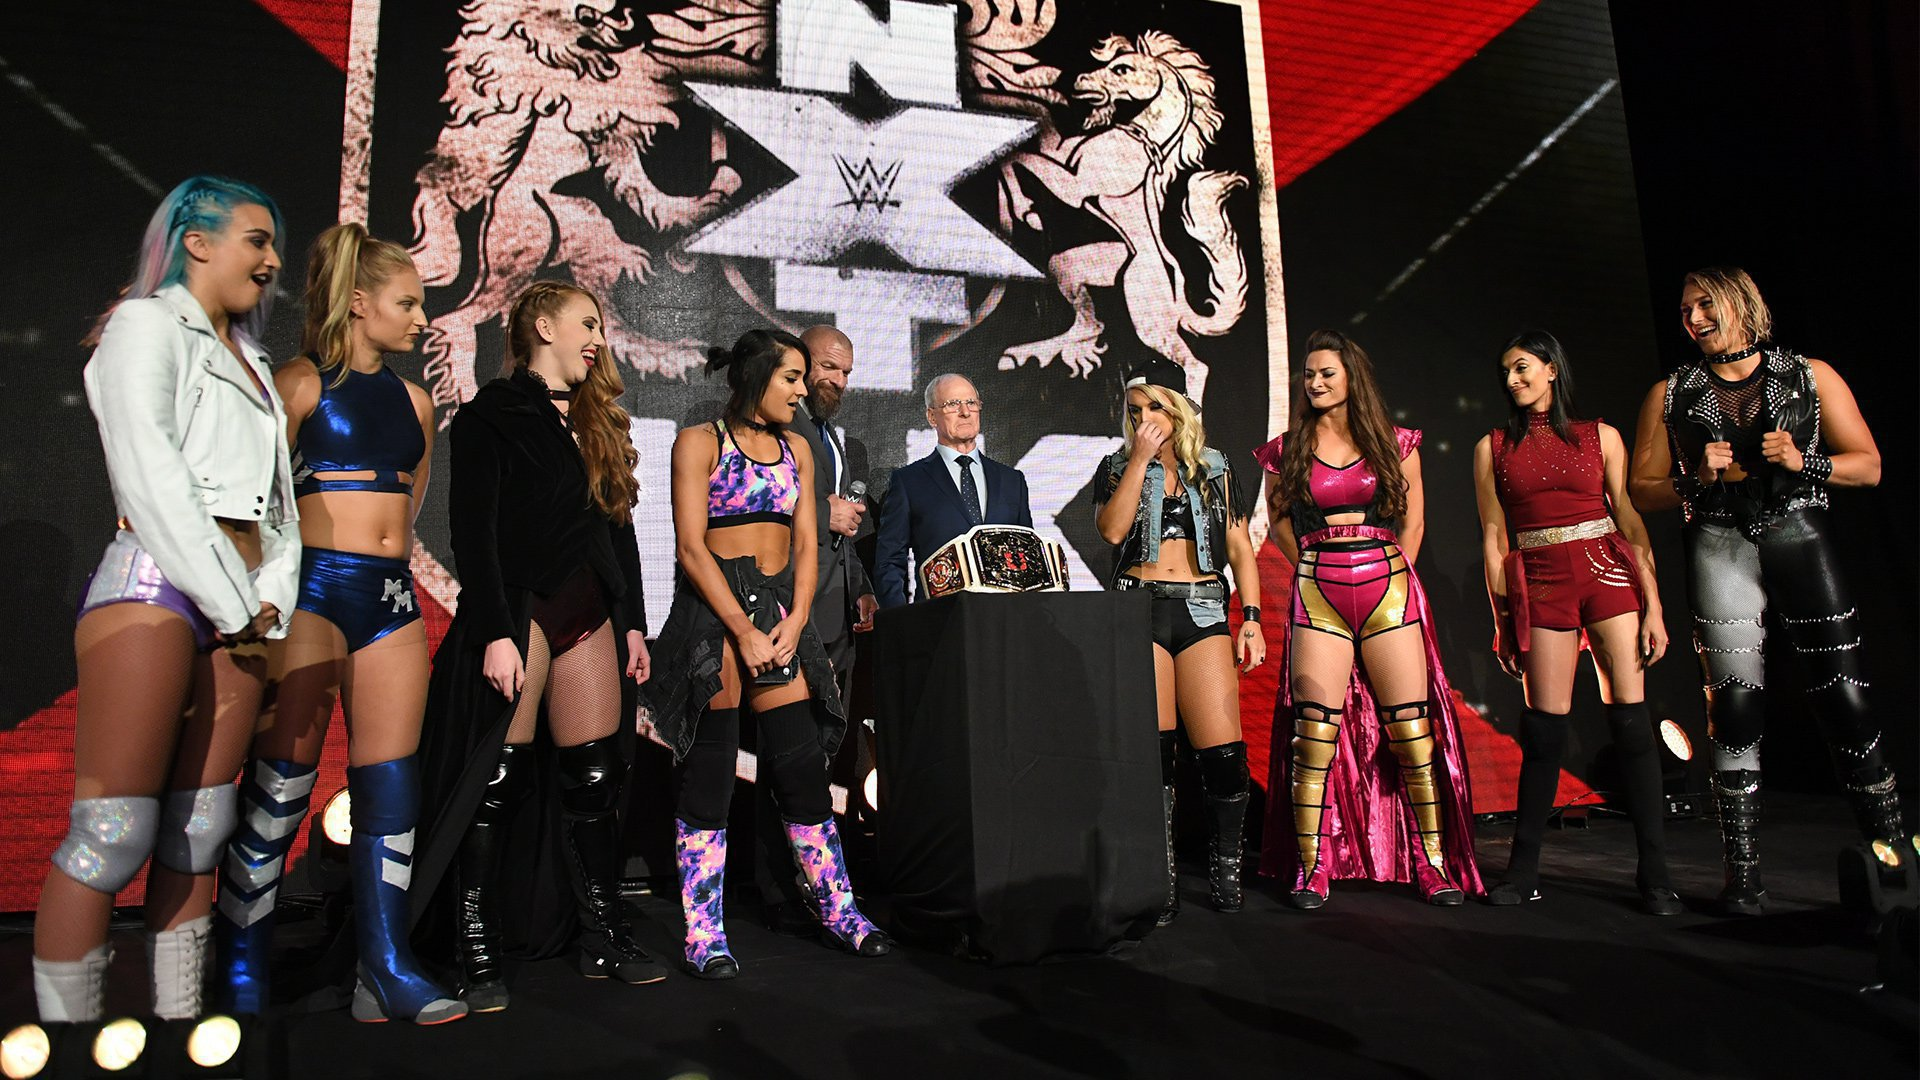 Prior to the announcement of TakeOver: Blackpool, WWE COO Triple H and Johnny Saint announce a historic tournament to crown the first-ever NXT UK Women's Champion, featuring the likes of Toni Storm, Rhea Ripley, Jinny, Isla Dawn, Millie McKenzie, Nina Samuels, Dakota Kai and Xia Brookside.